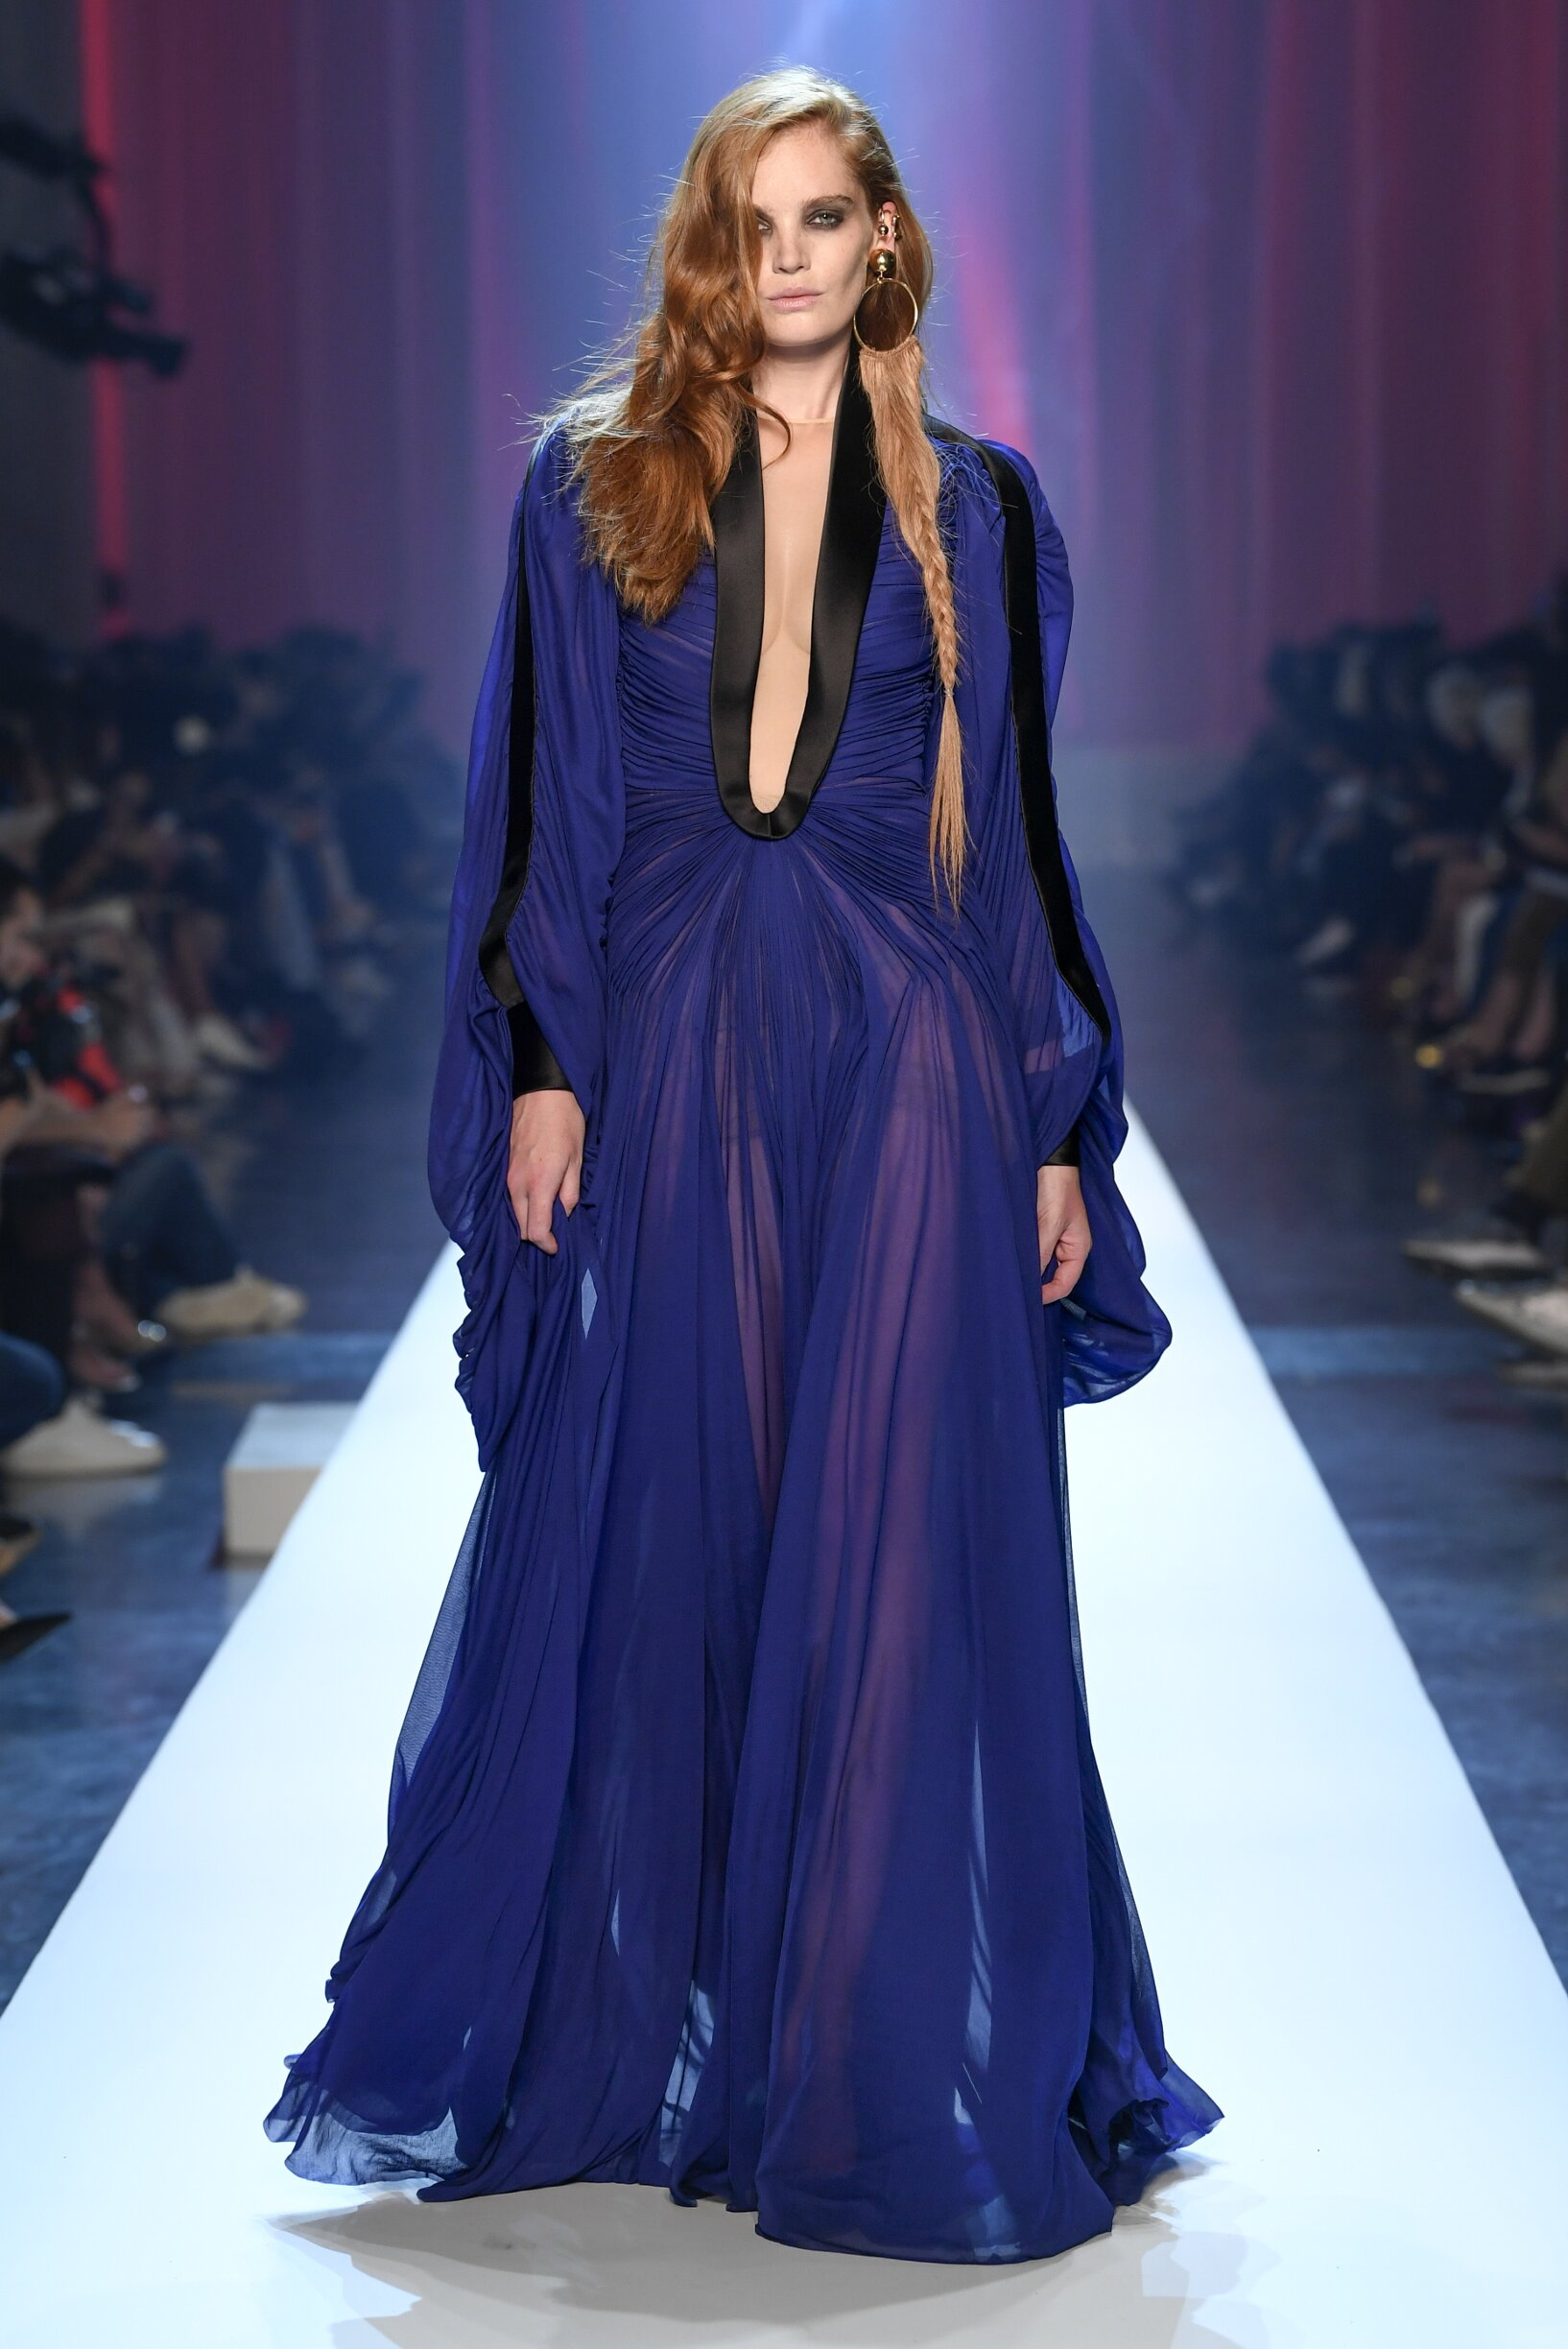 Fall Winter Fashion Trends 2018 Jean-Paul Gaultier Haute Couture